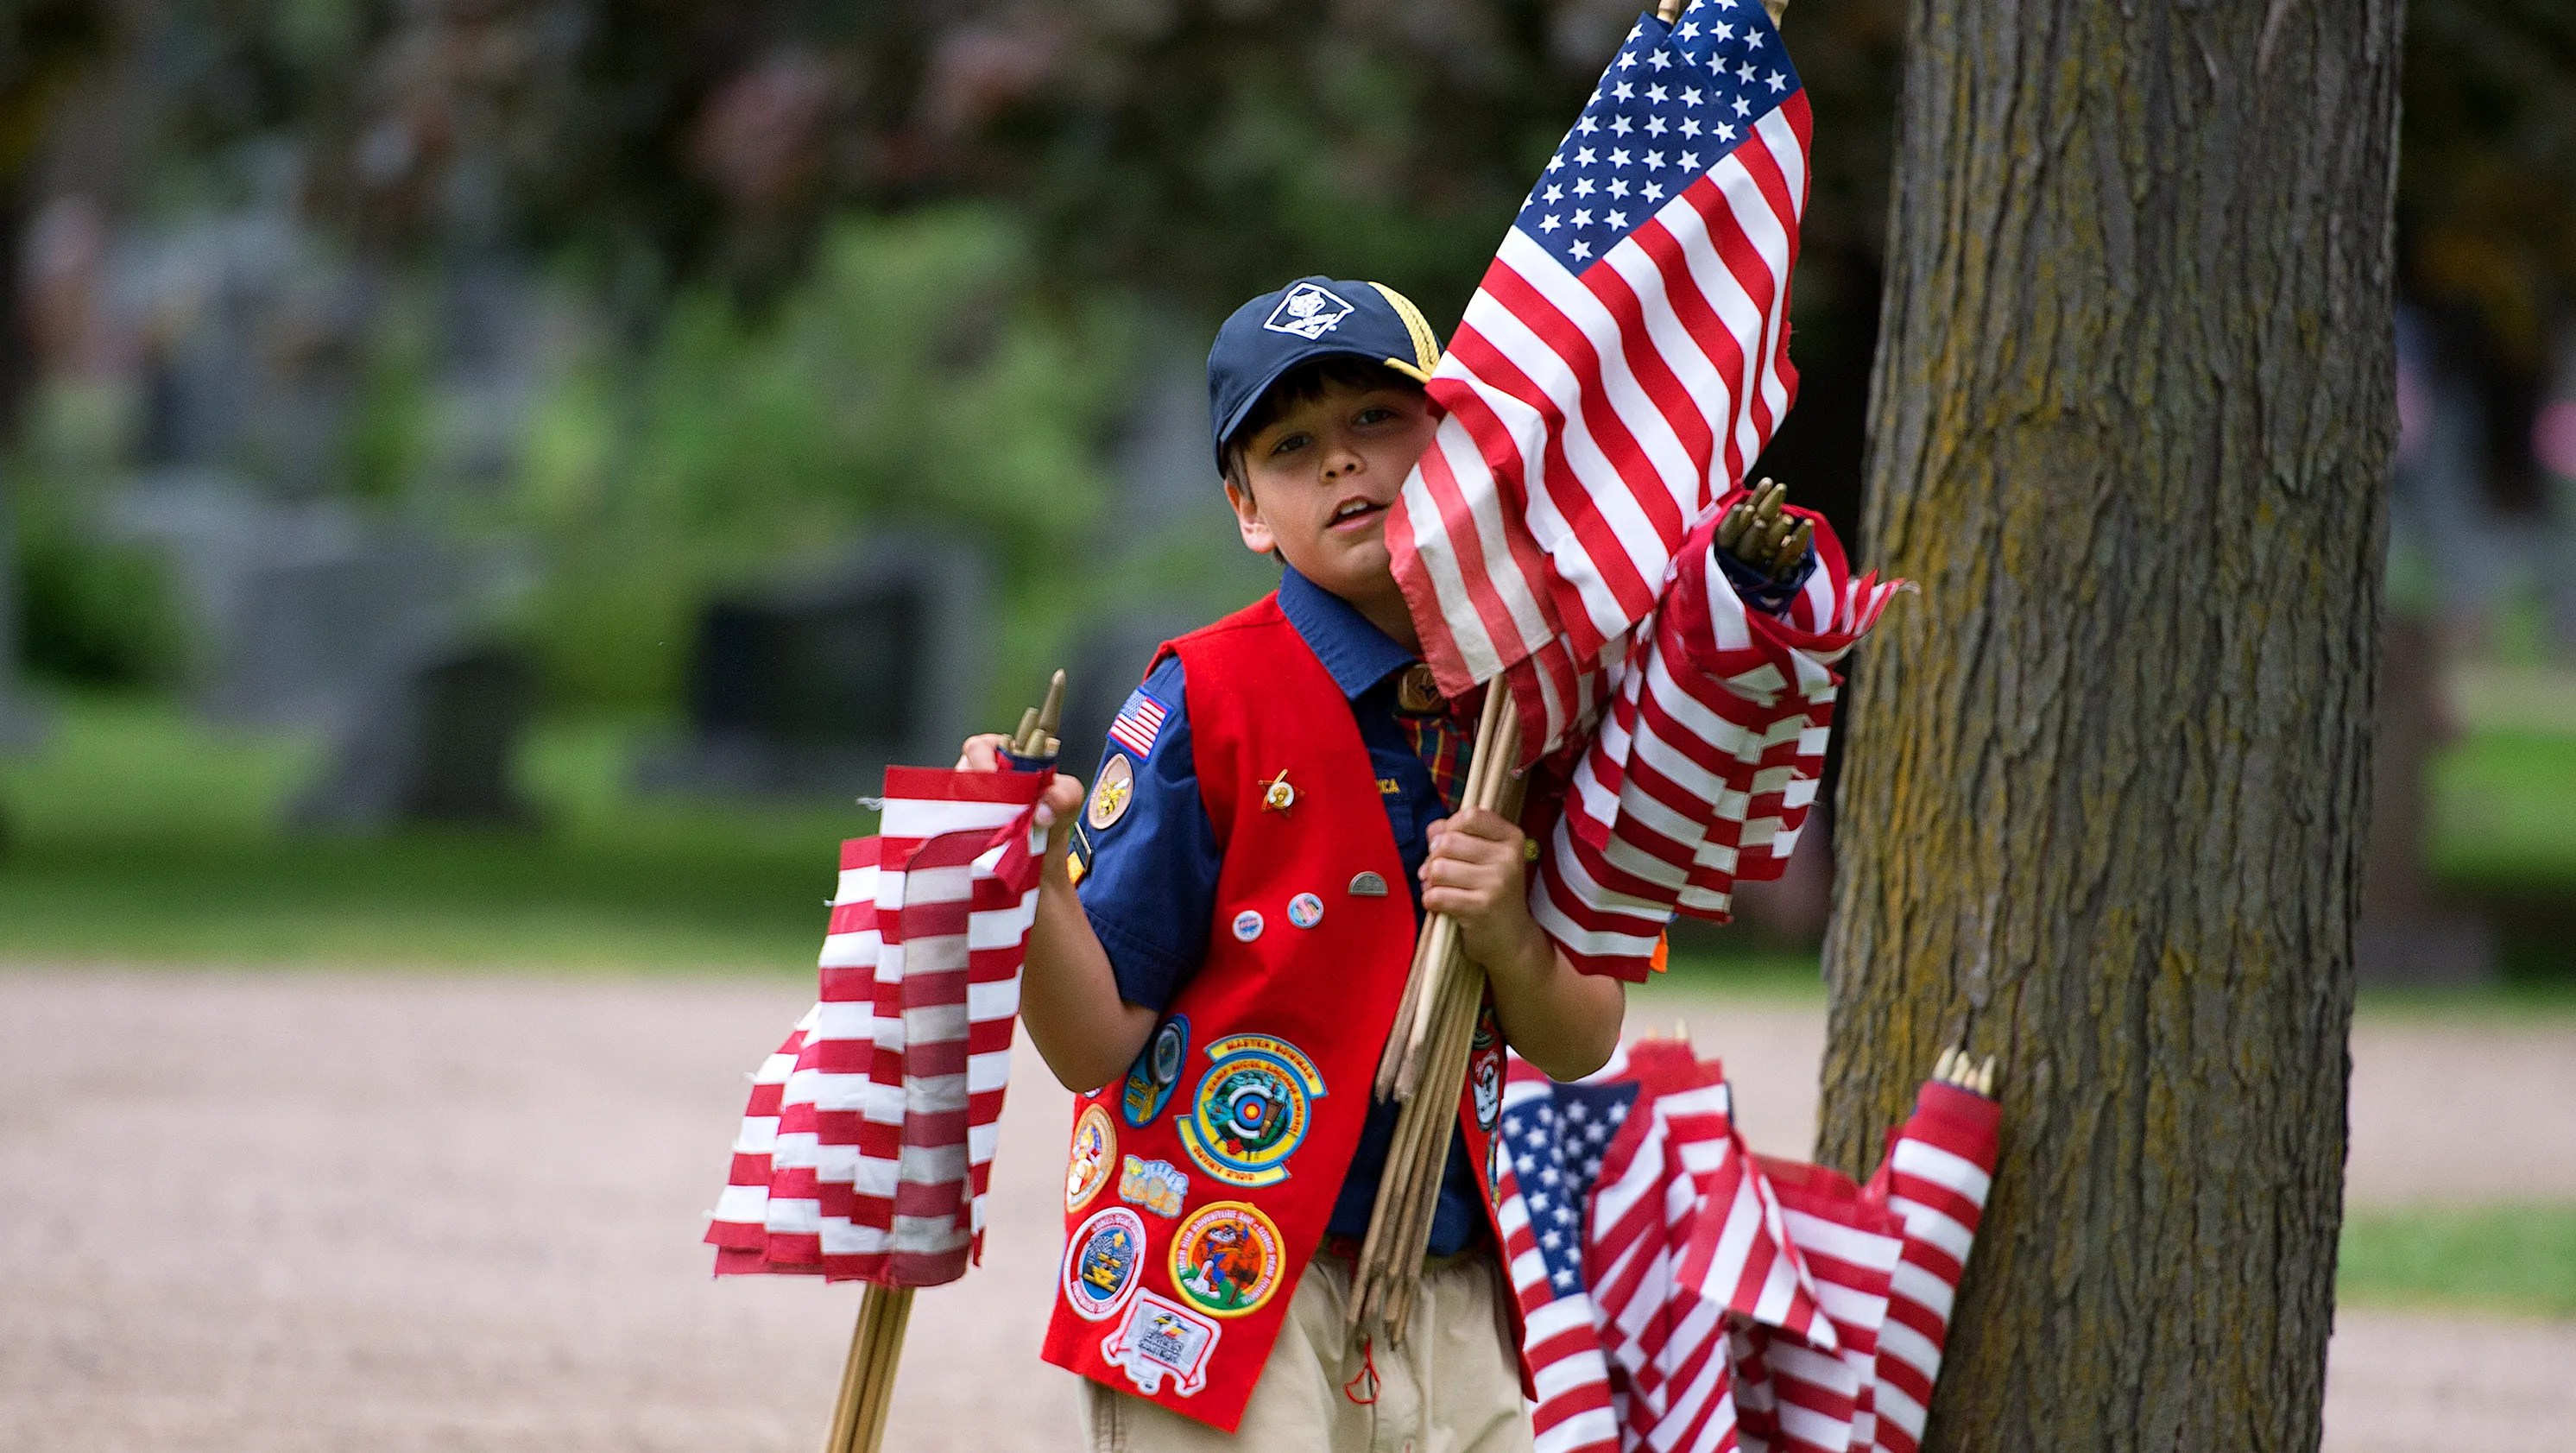 Boy Scouts Place American Flags On Graves In Honor Of